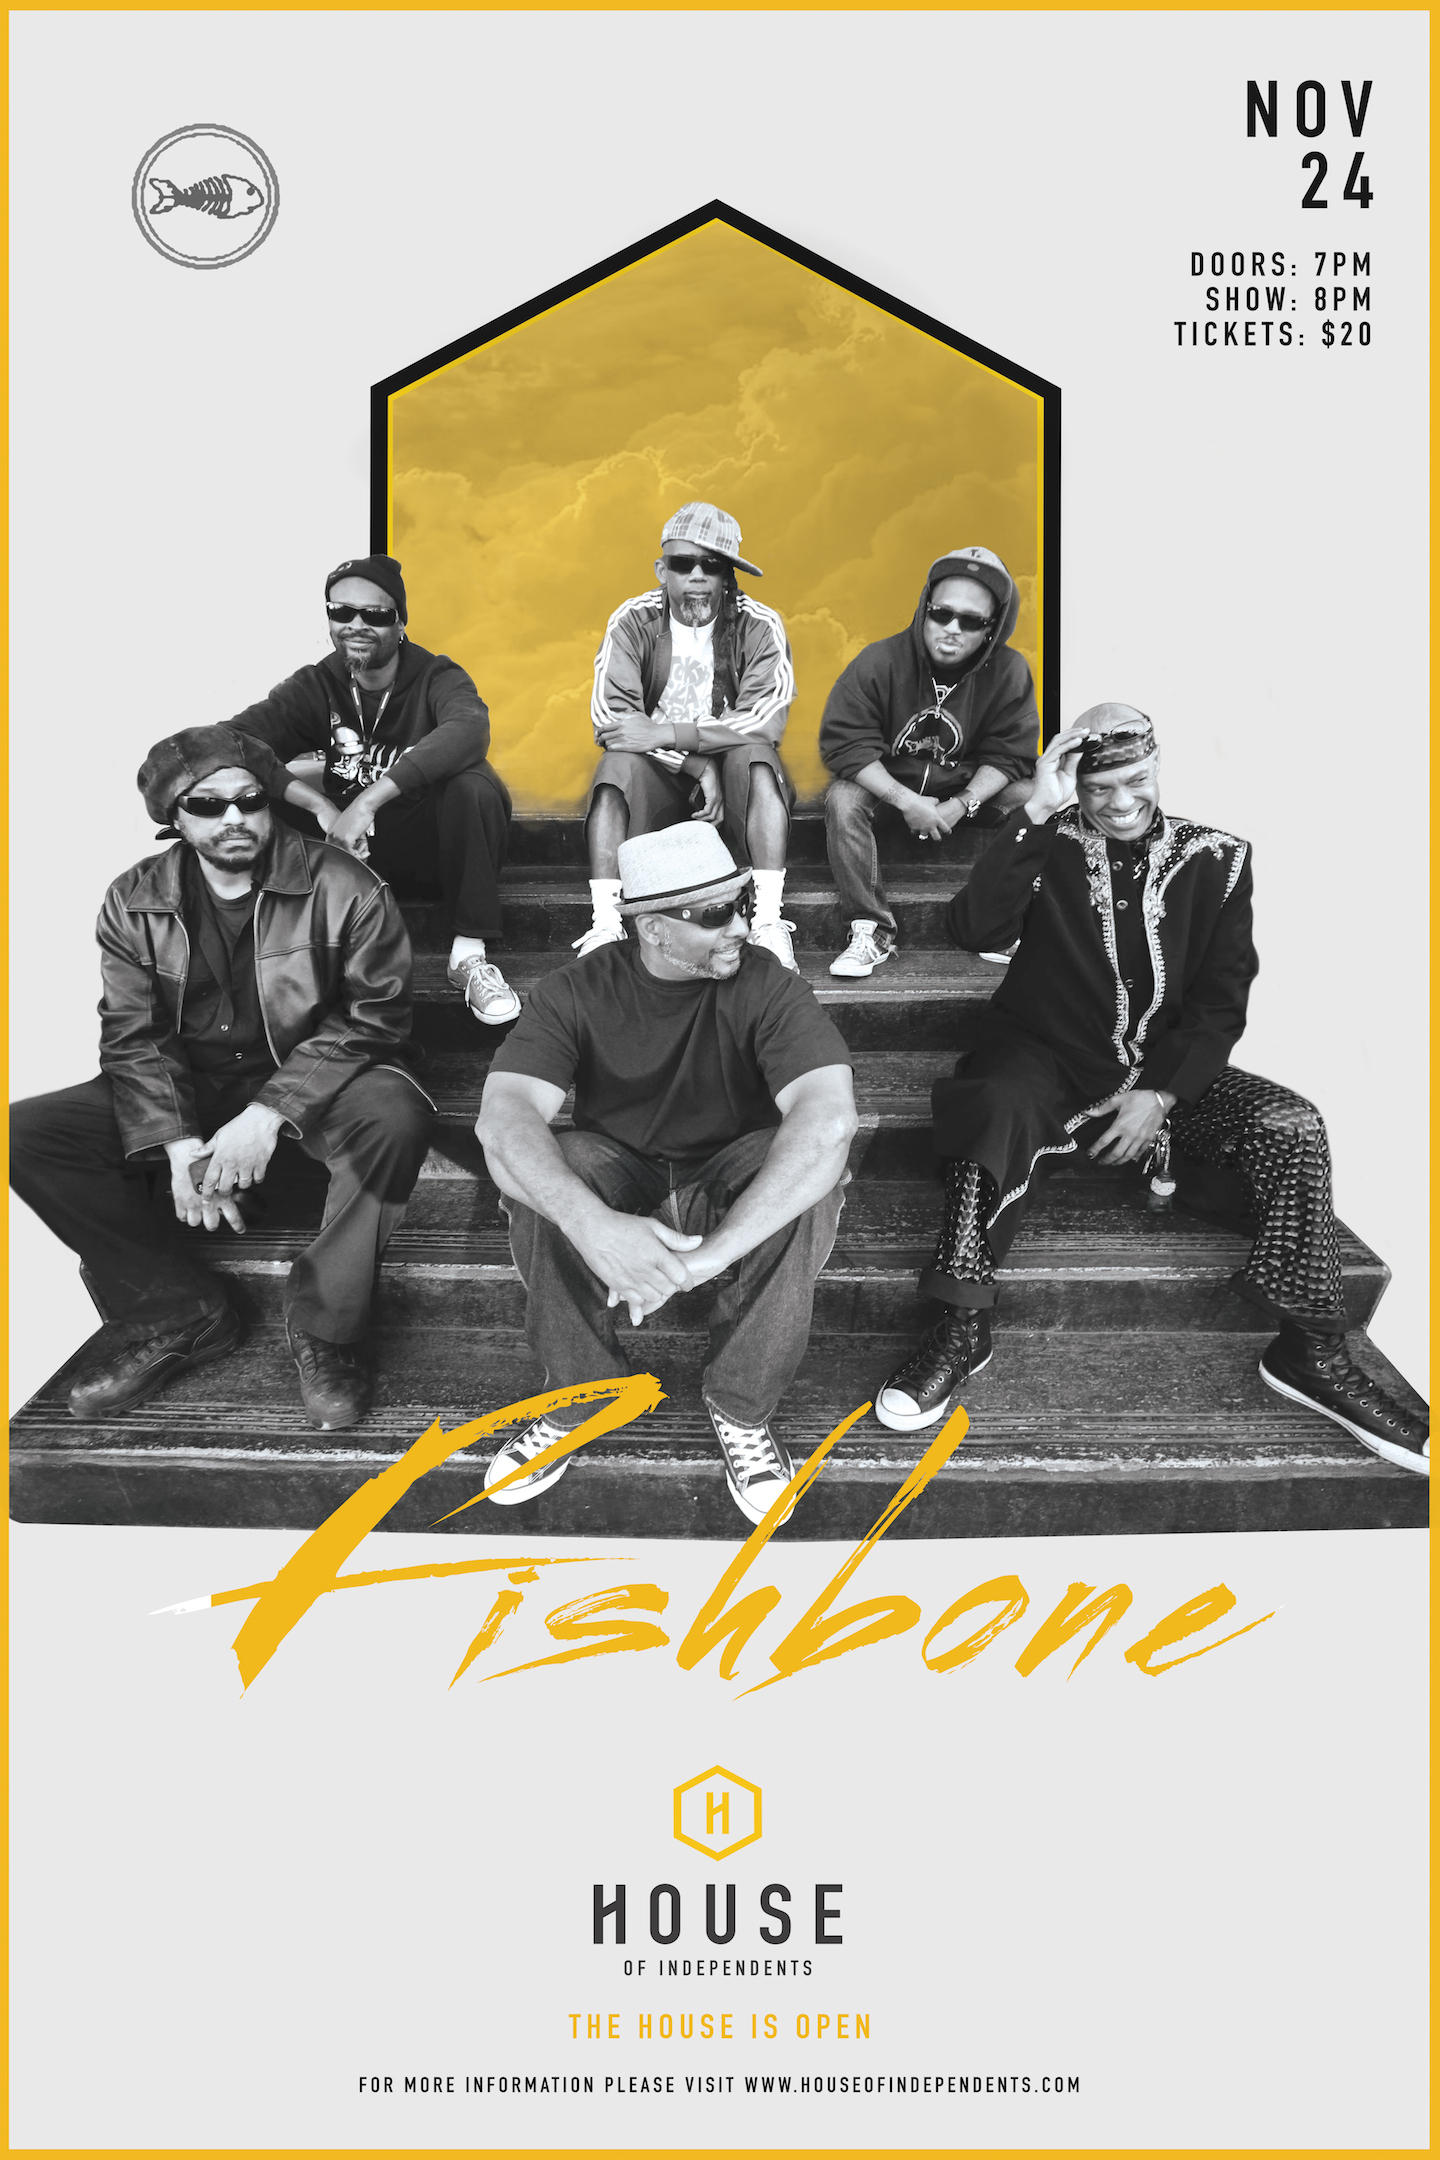 Fishbone Play The Opening Of The House of Independents on 11/24!